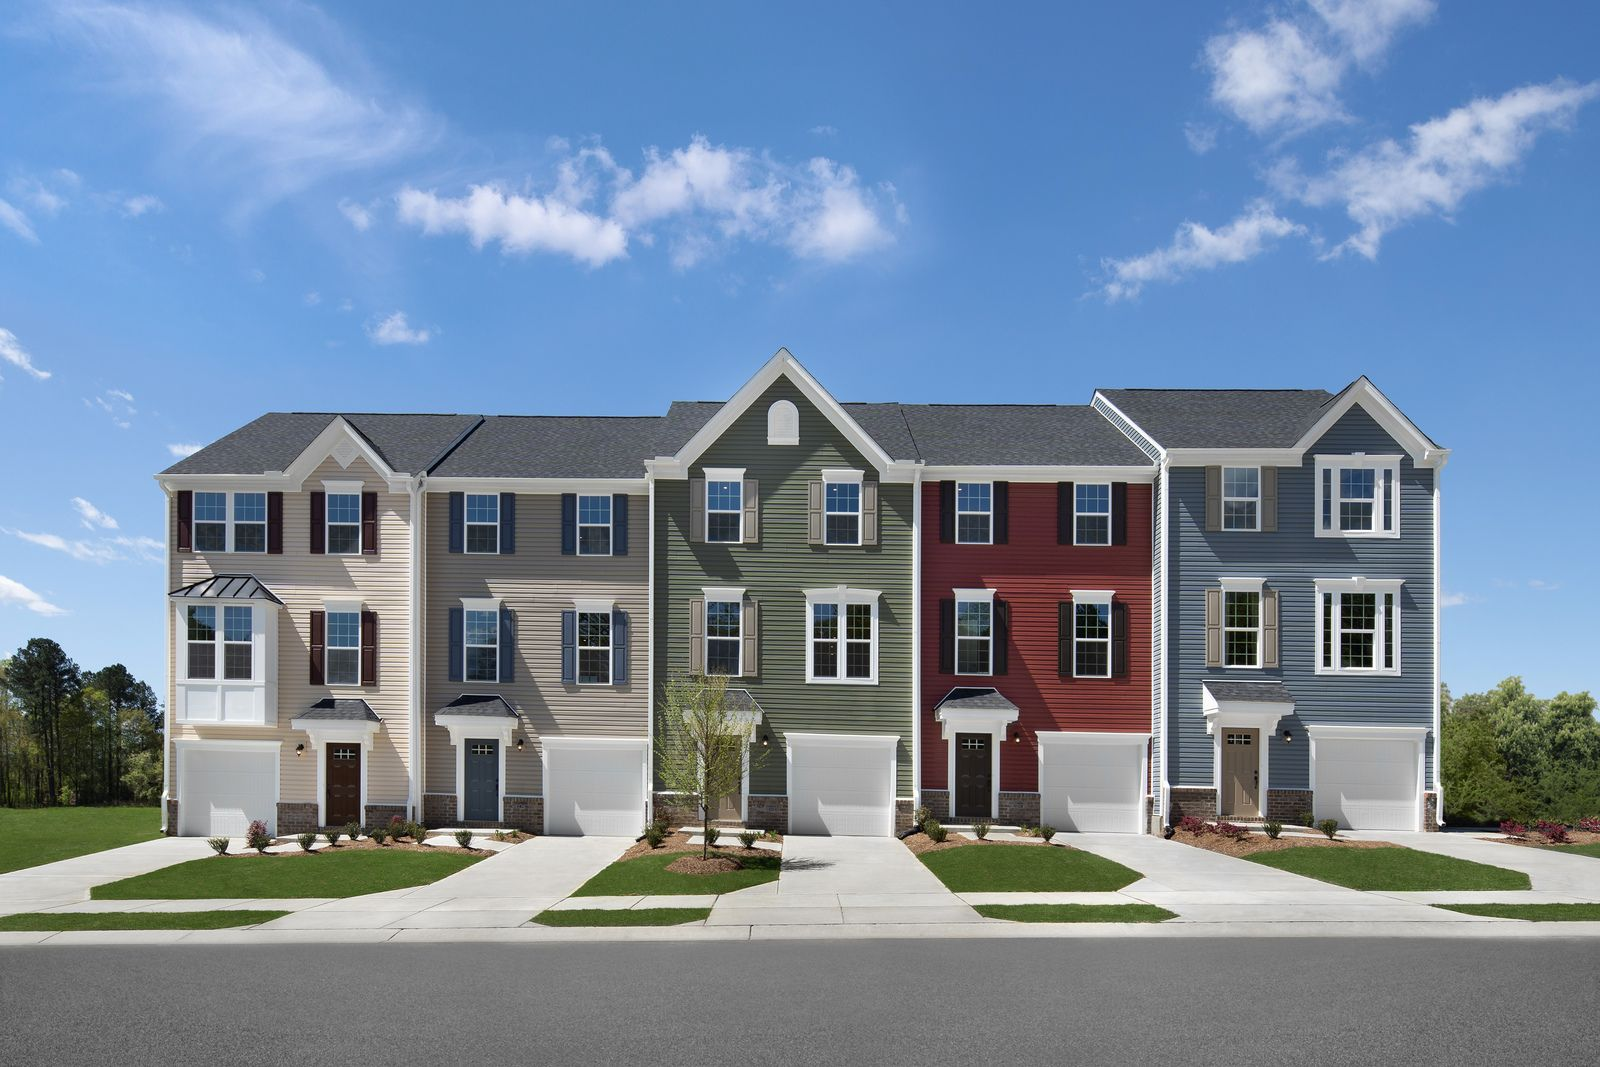 LAST CHANCE FOR RIVERWOOD TOWNHOMES:Only ONE home left! End unit currently under construction for November move-in. Hurry in to make it yours and receive $2,500 toward closing costs!